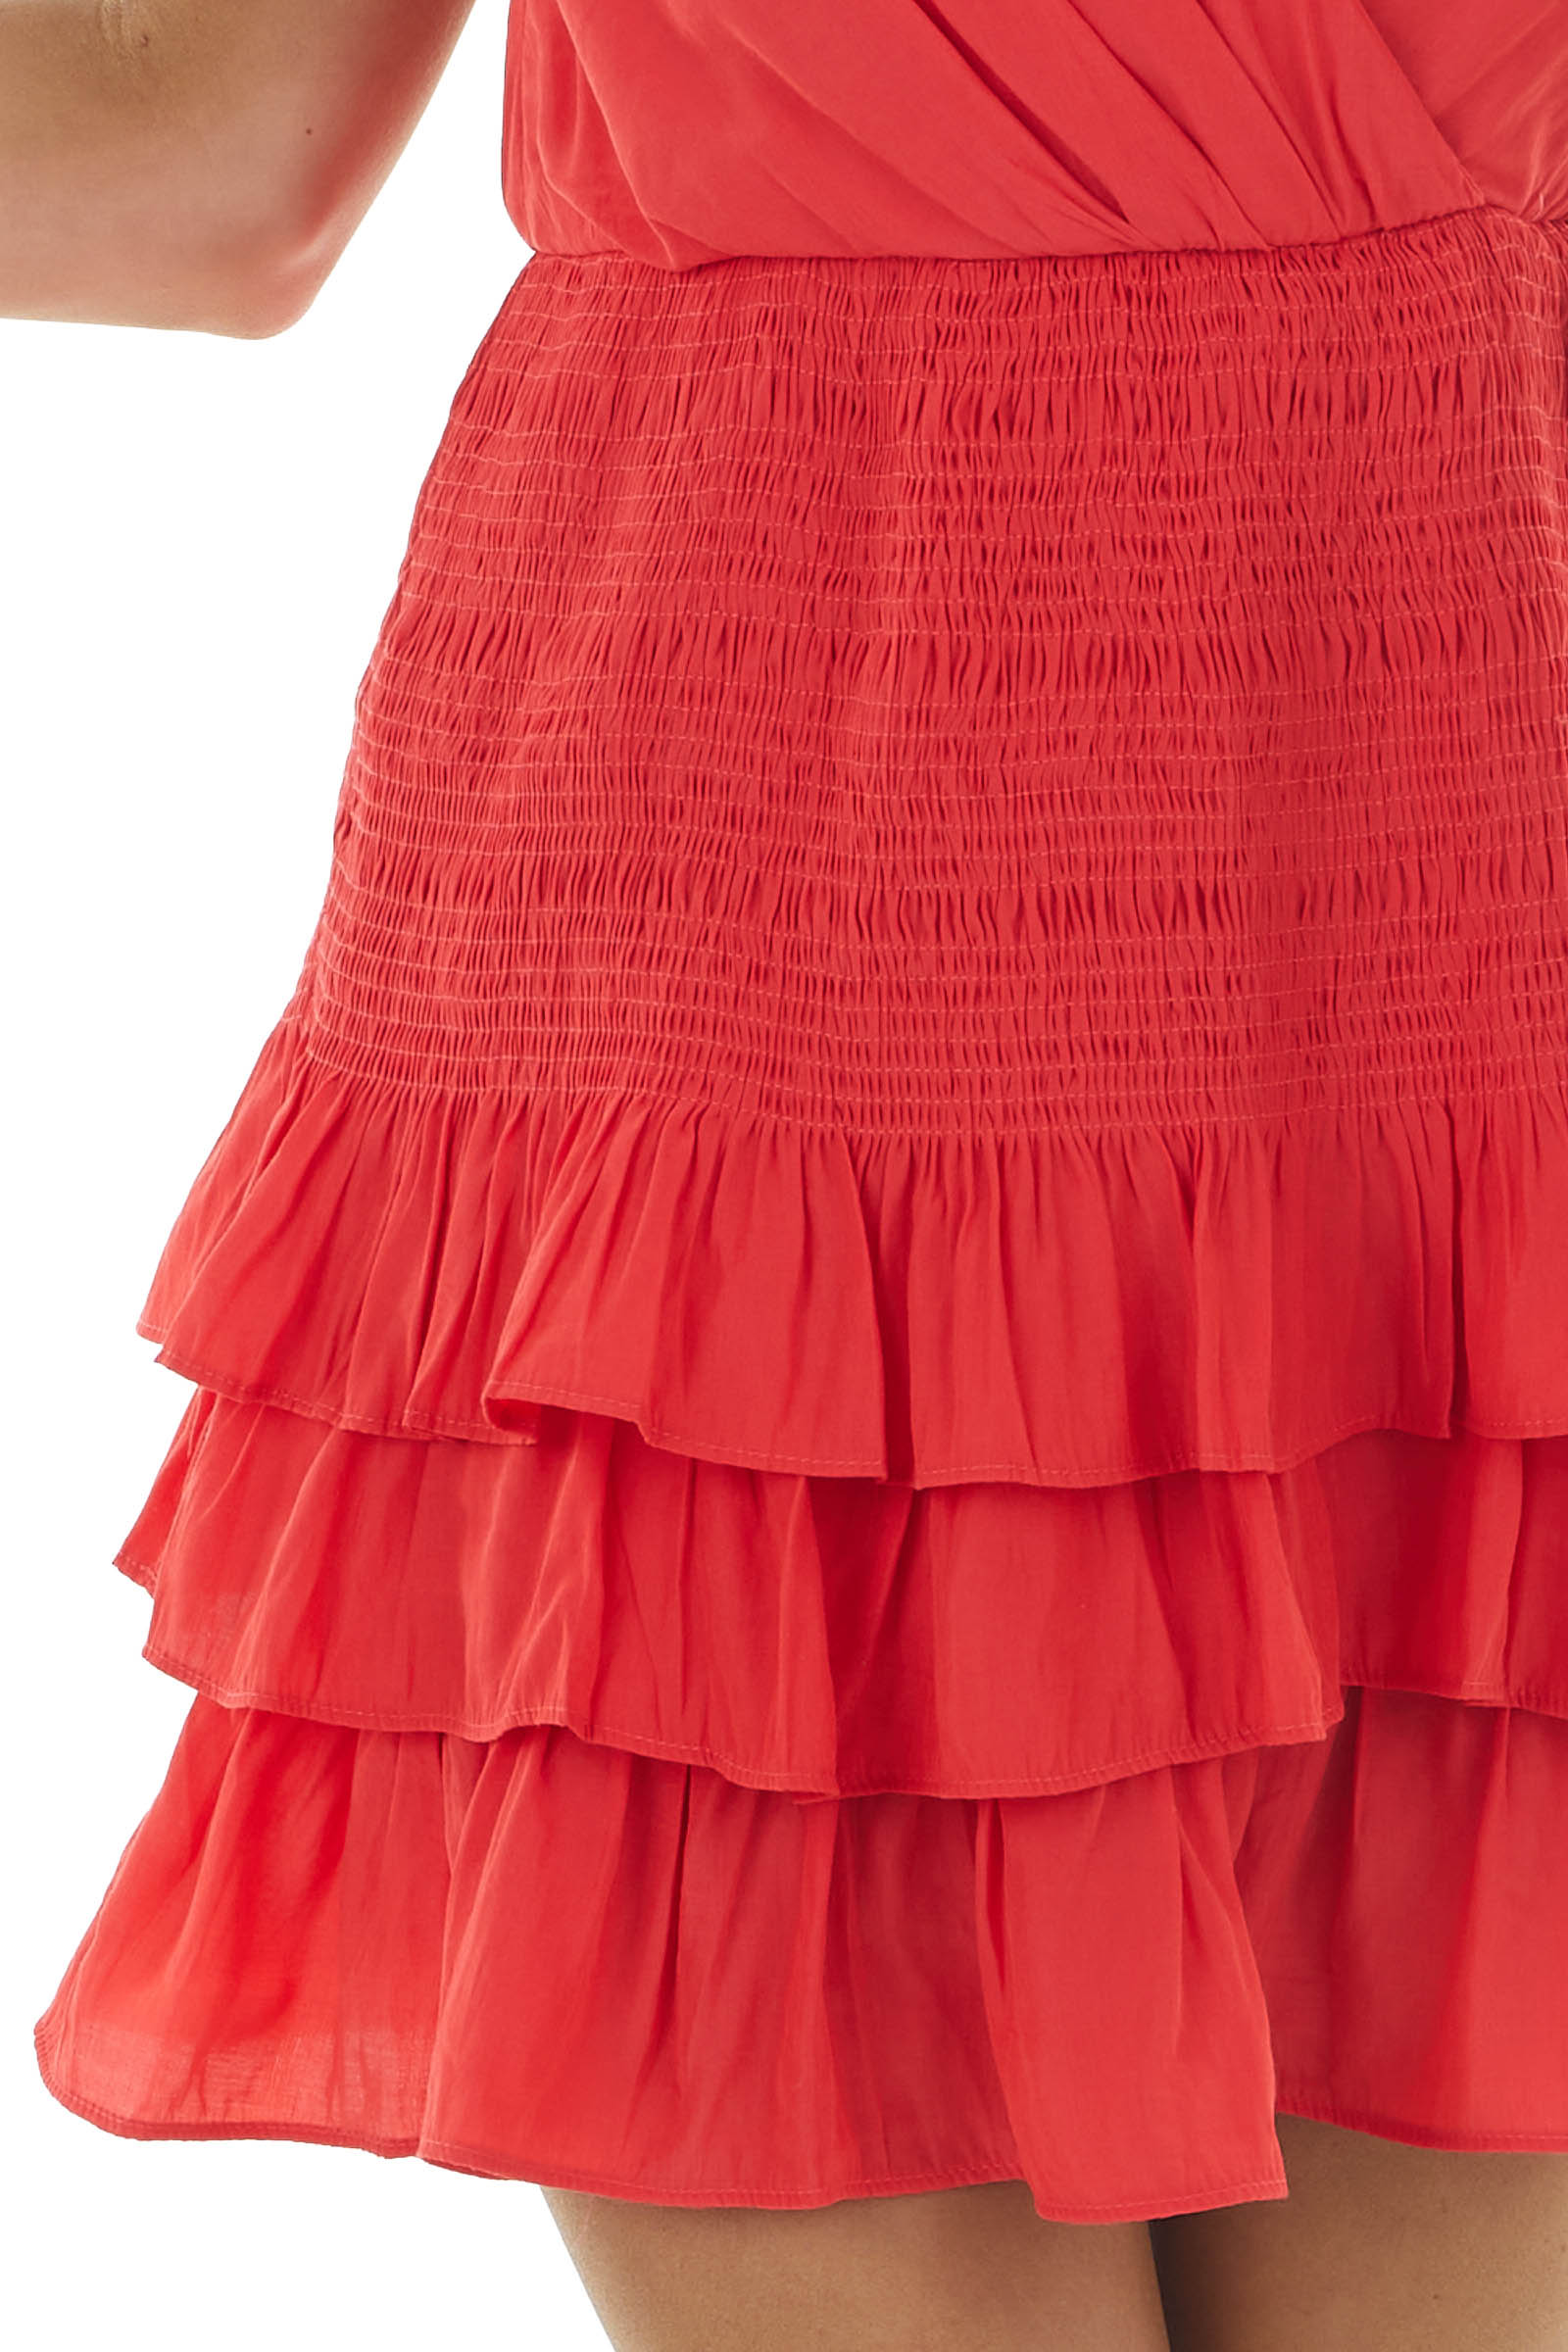 Tomato Red Strappy Mini Dress with Smocking and Tiers